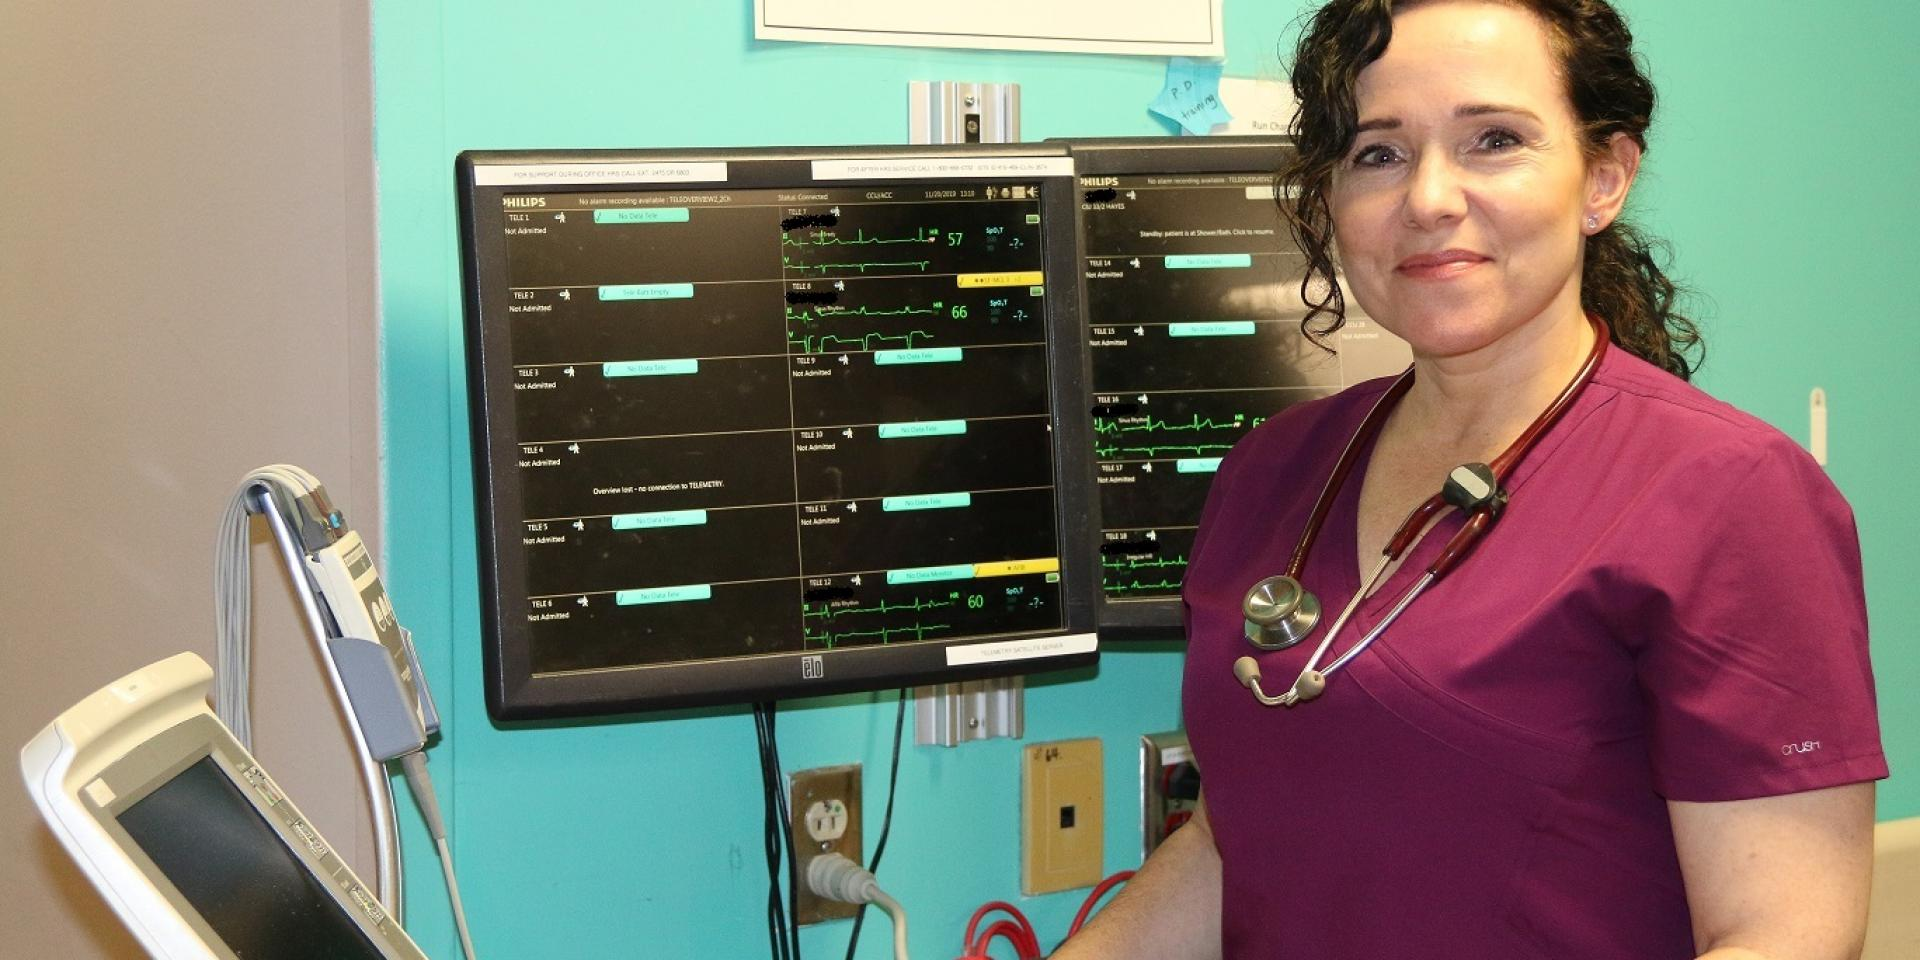 nurse standing in front of monitoring equipment